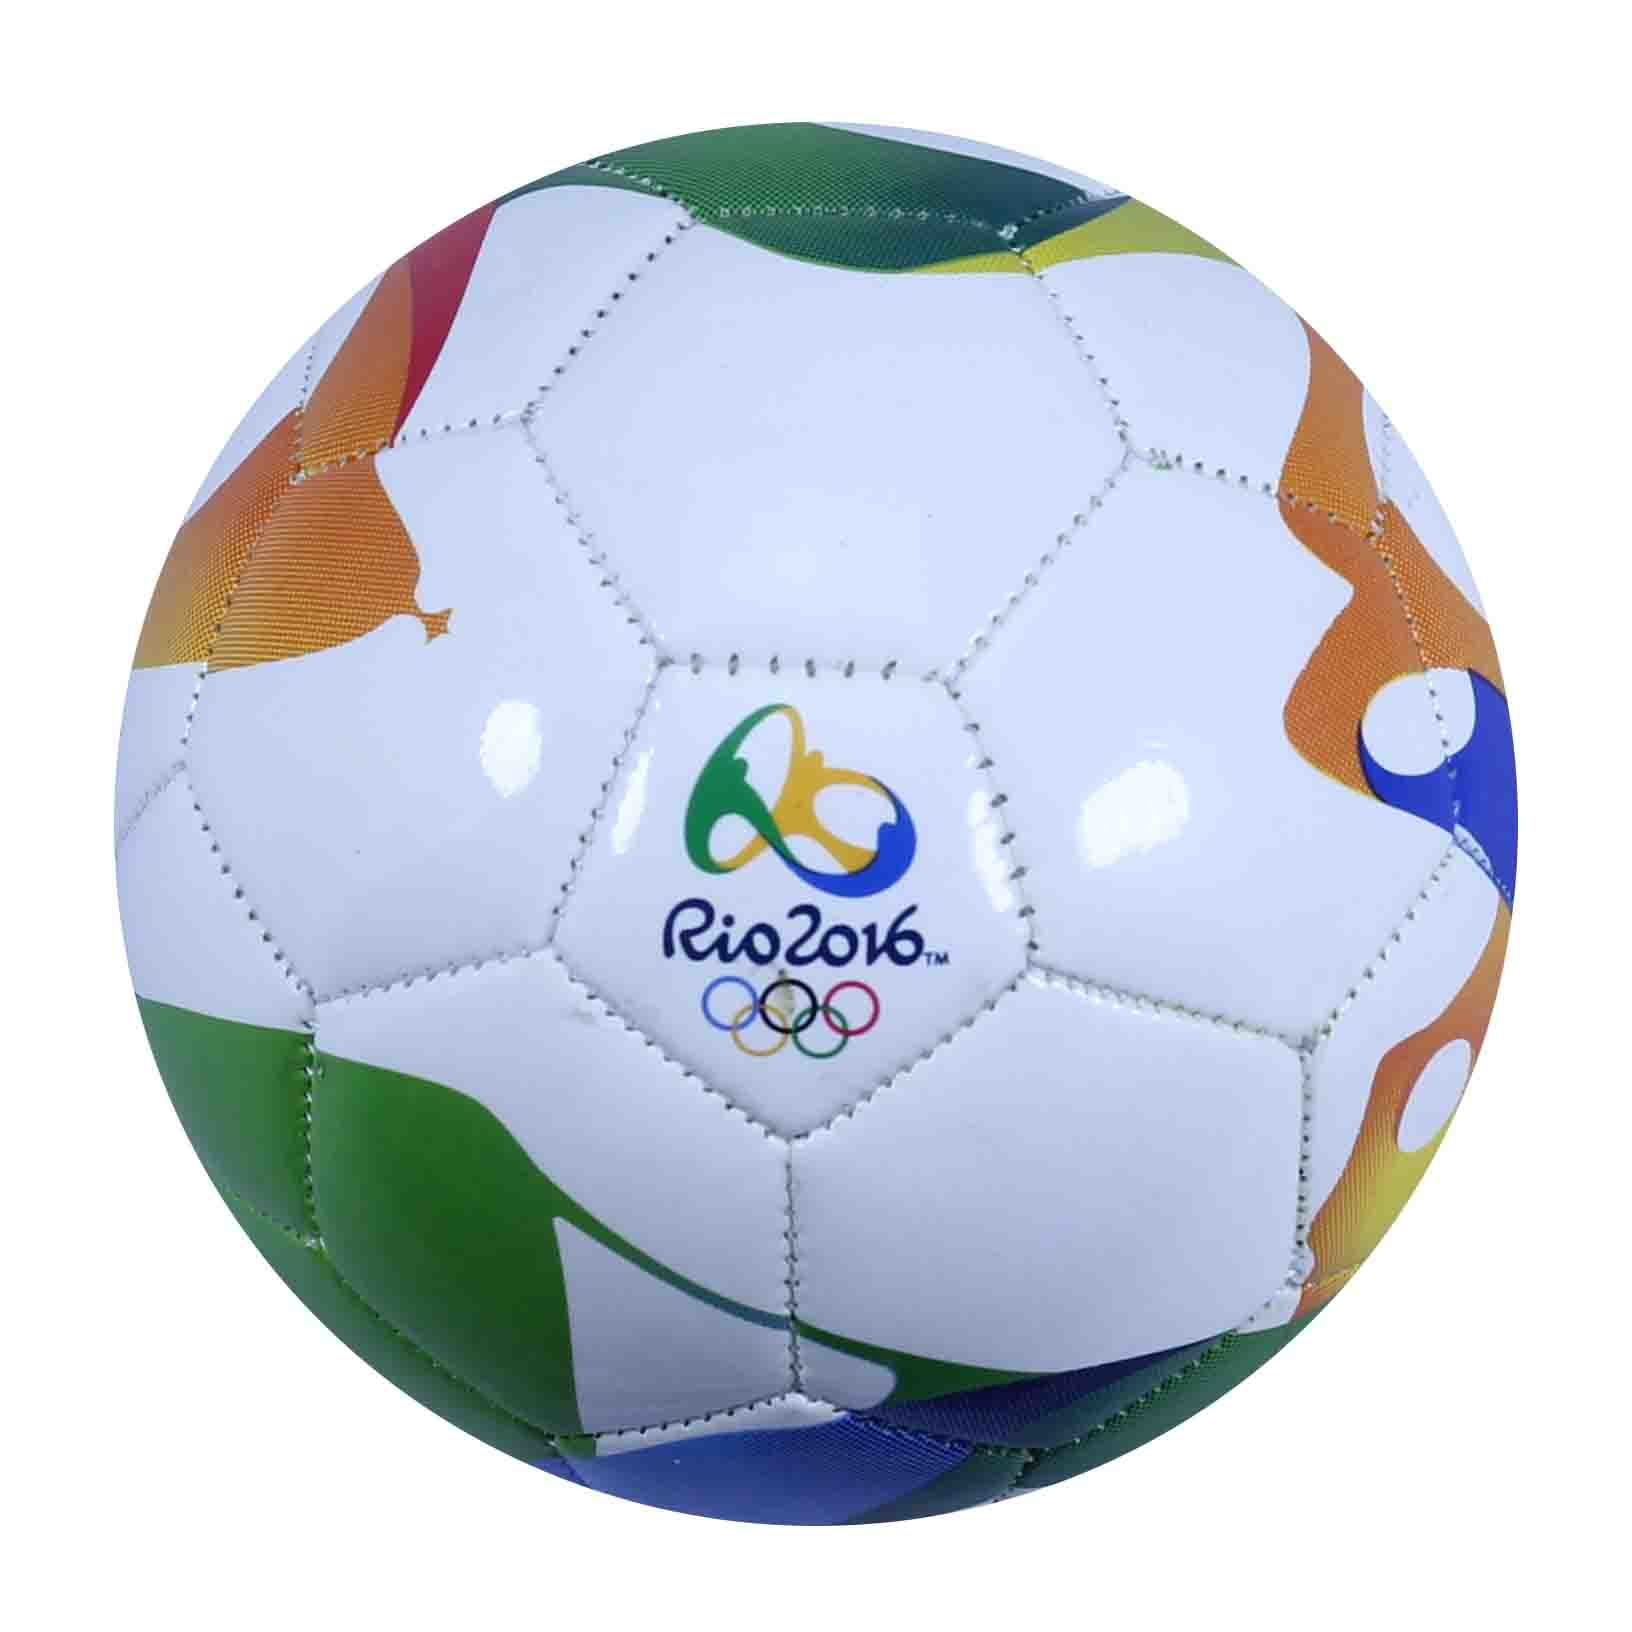 2016 Olympic Game Ball of Football